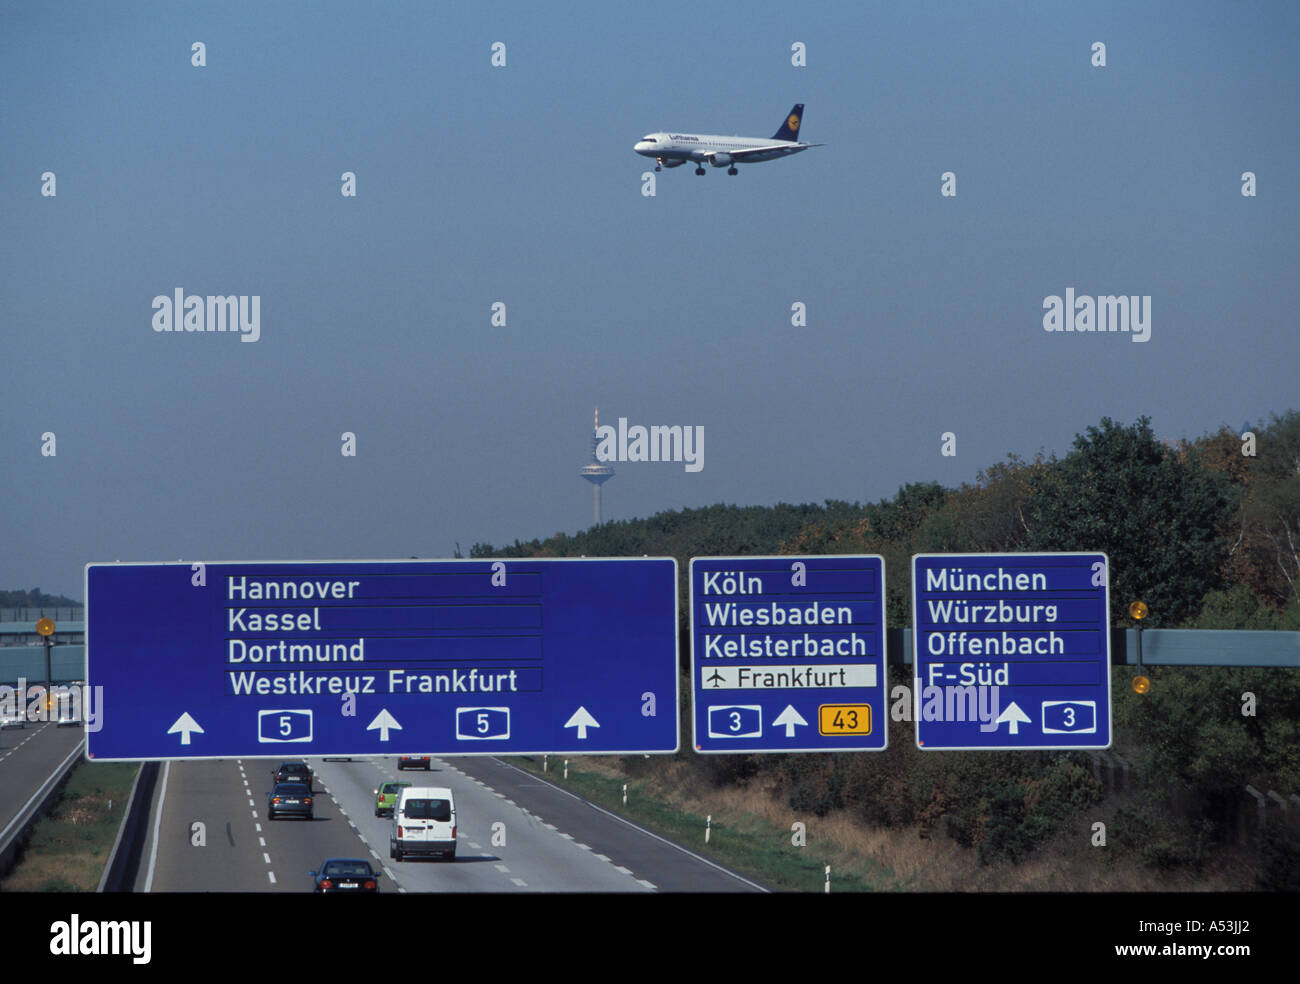 Frankfurt, Germany: Approach of a Lufthansa Airbus to the Frankfurt airport directly above the Frankfurt Autobahn crossing - Stock Image